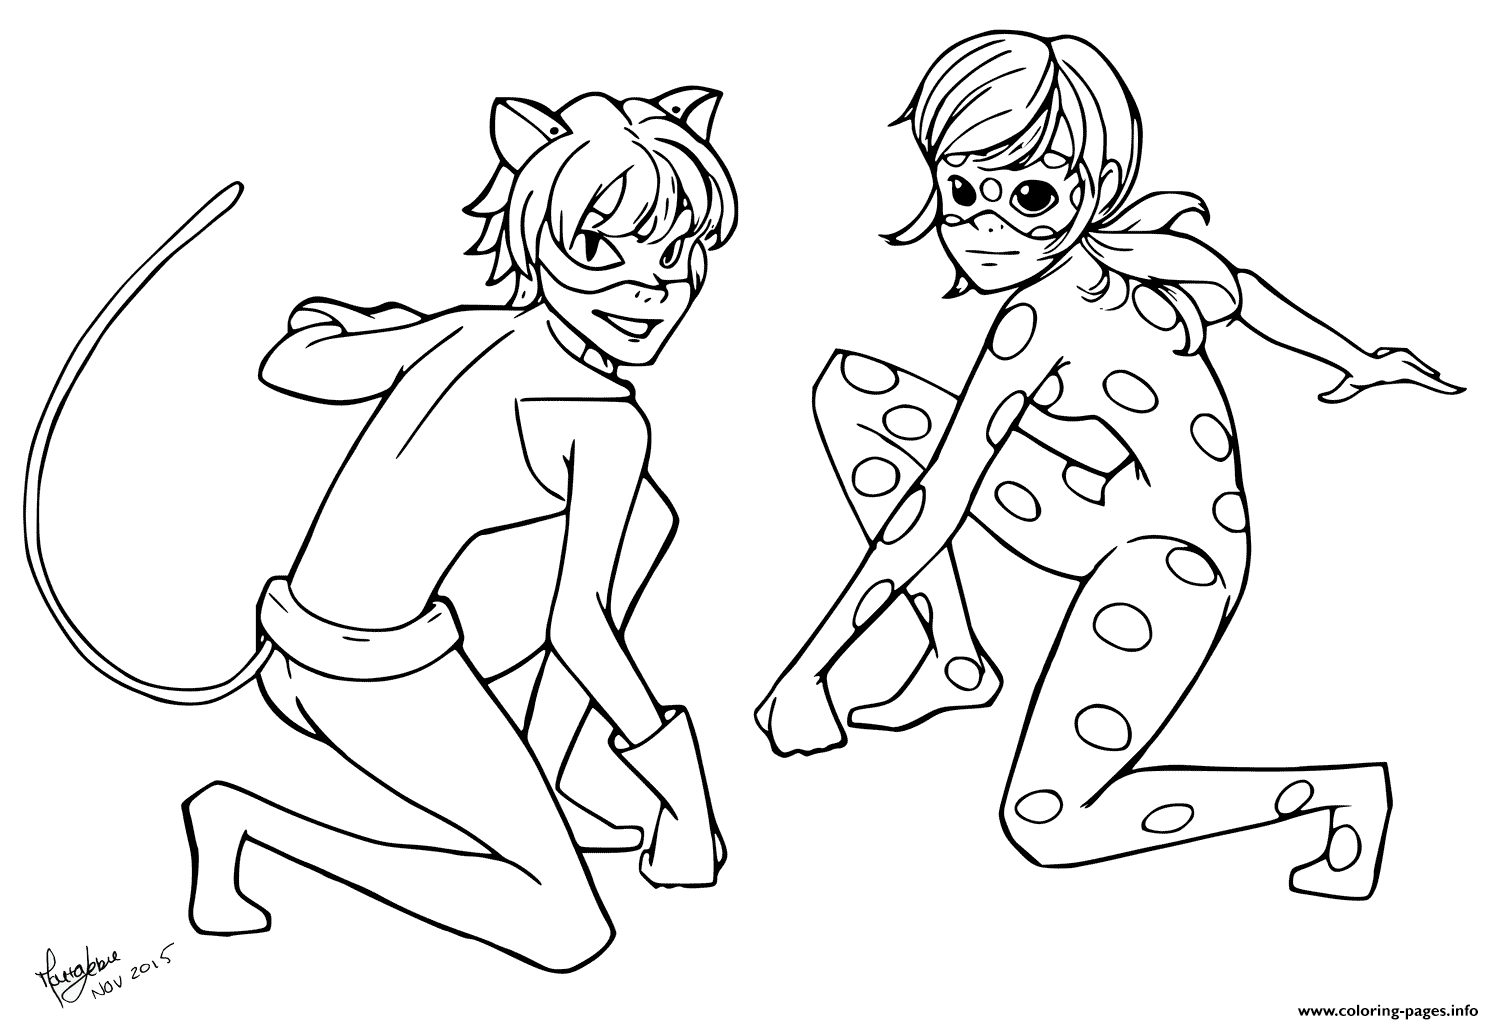 Miraculous Ladybug Coloring Pages at GetDrawings | Free ...